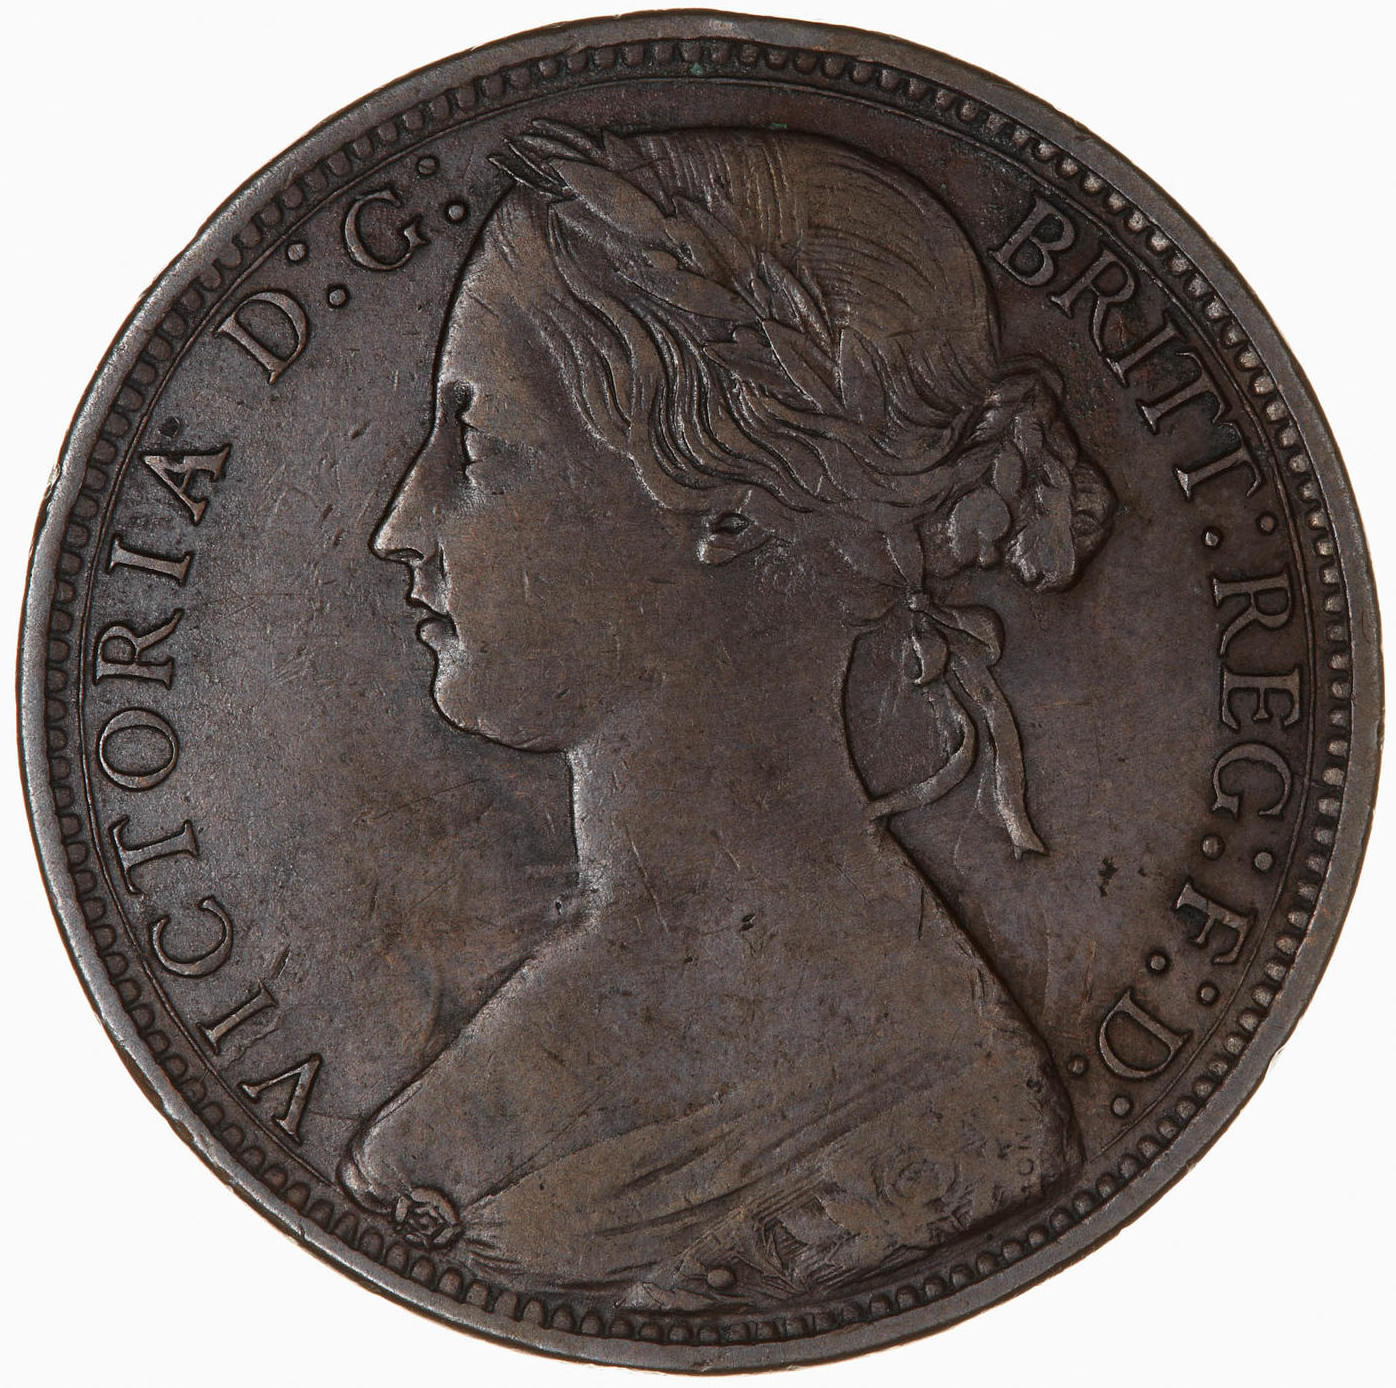 Penny 1873: Photo Coin - Penny, Queen Victoria, Great Britain, 1873